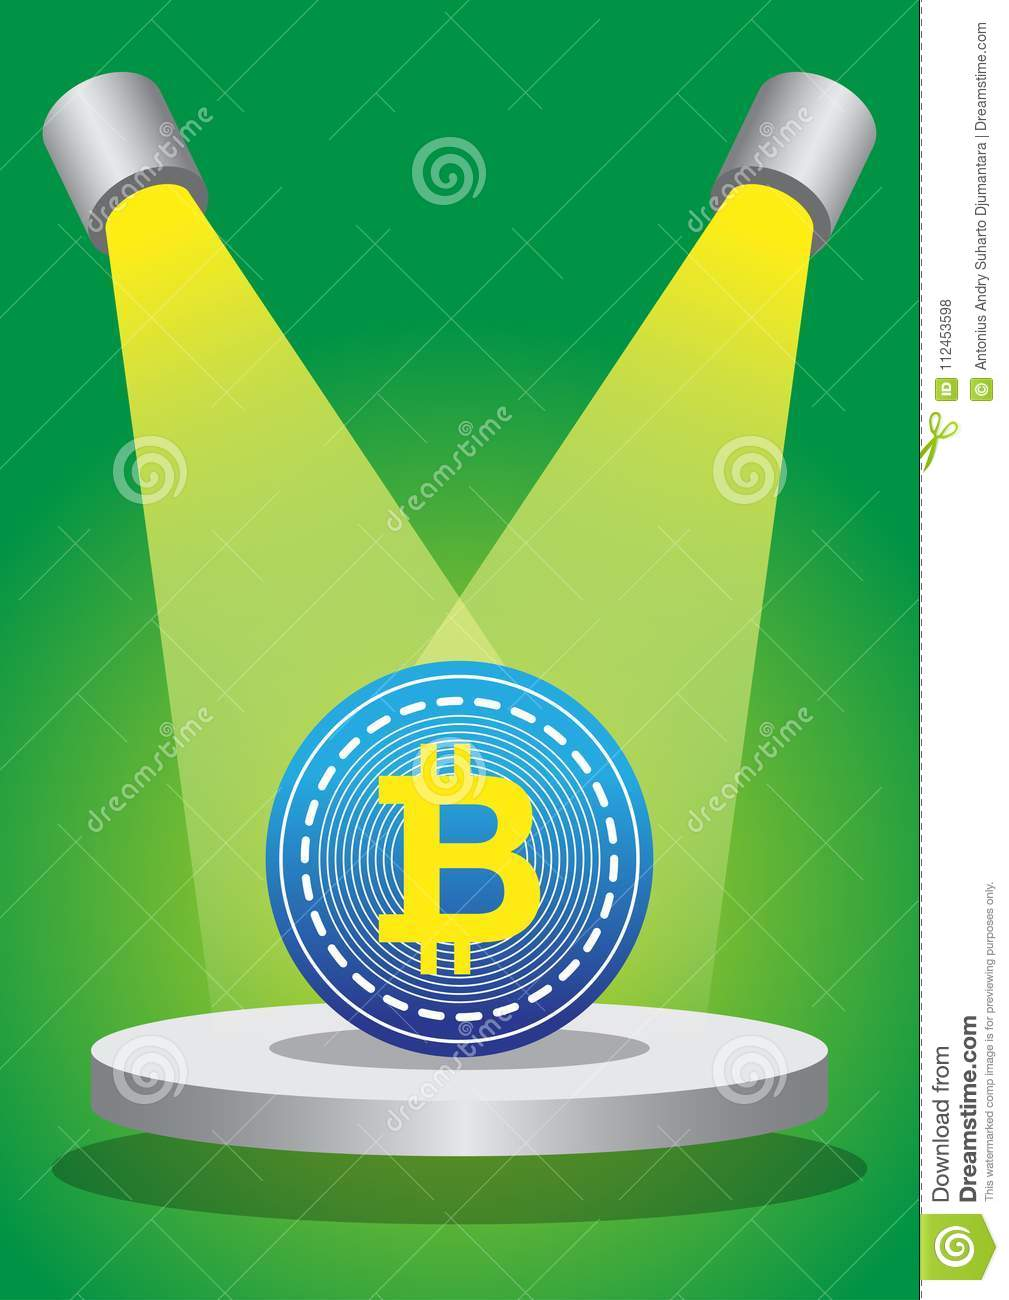 Download Two Gaint Down Light Spoting Bitcoin Superstar Stock Vector - Illustration of multiple, money